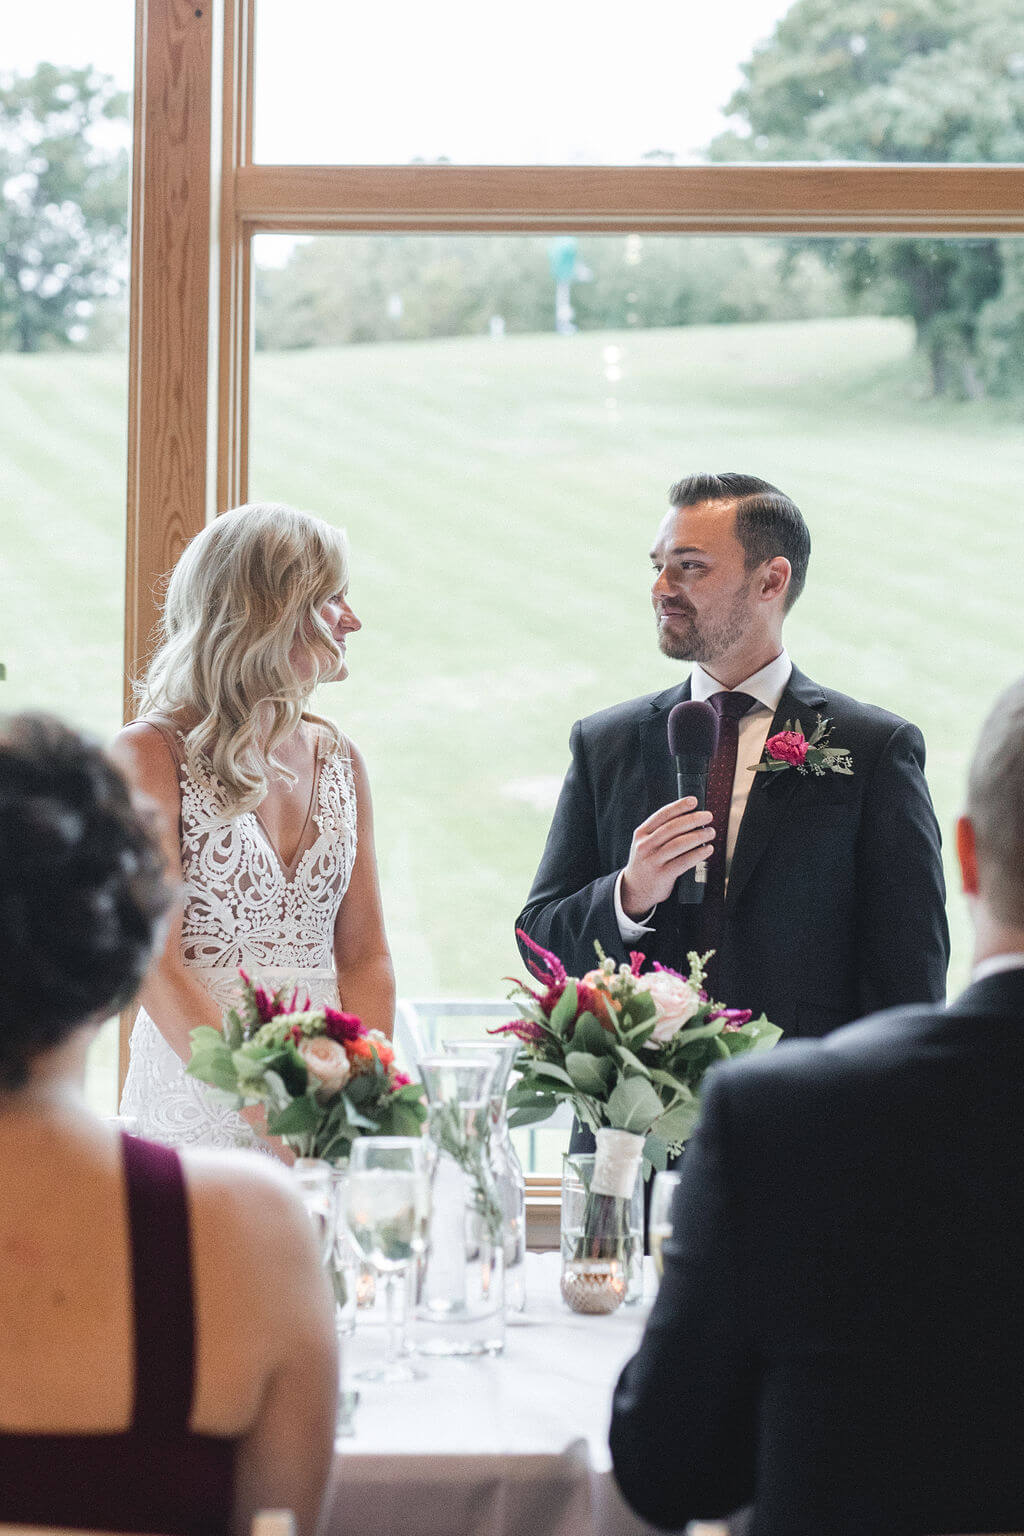 Ashley and Tom | Mariah Brink Photo | Hyland Hills Wedding | Sixpence MN wedding planner | head table in front of the main windows